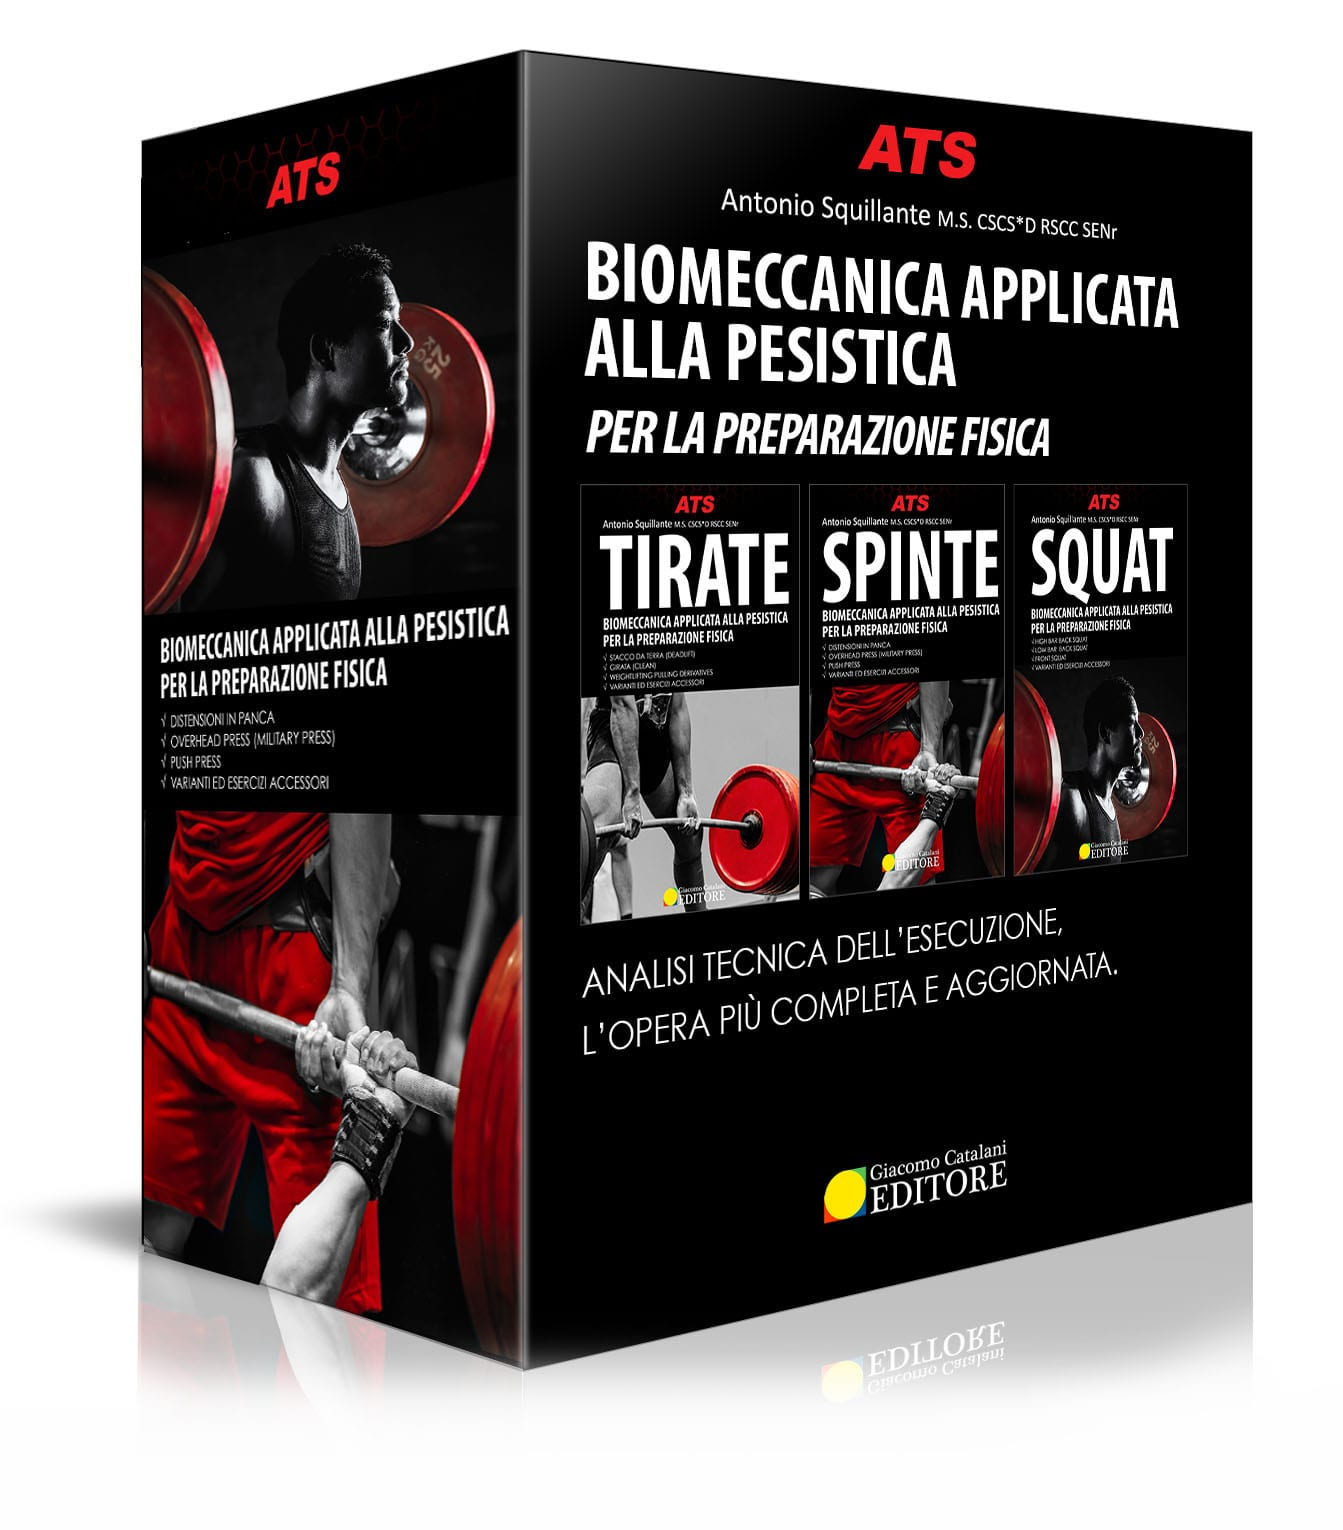 Cofanetto-squat-tirate-spinte-ATS